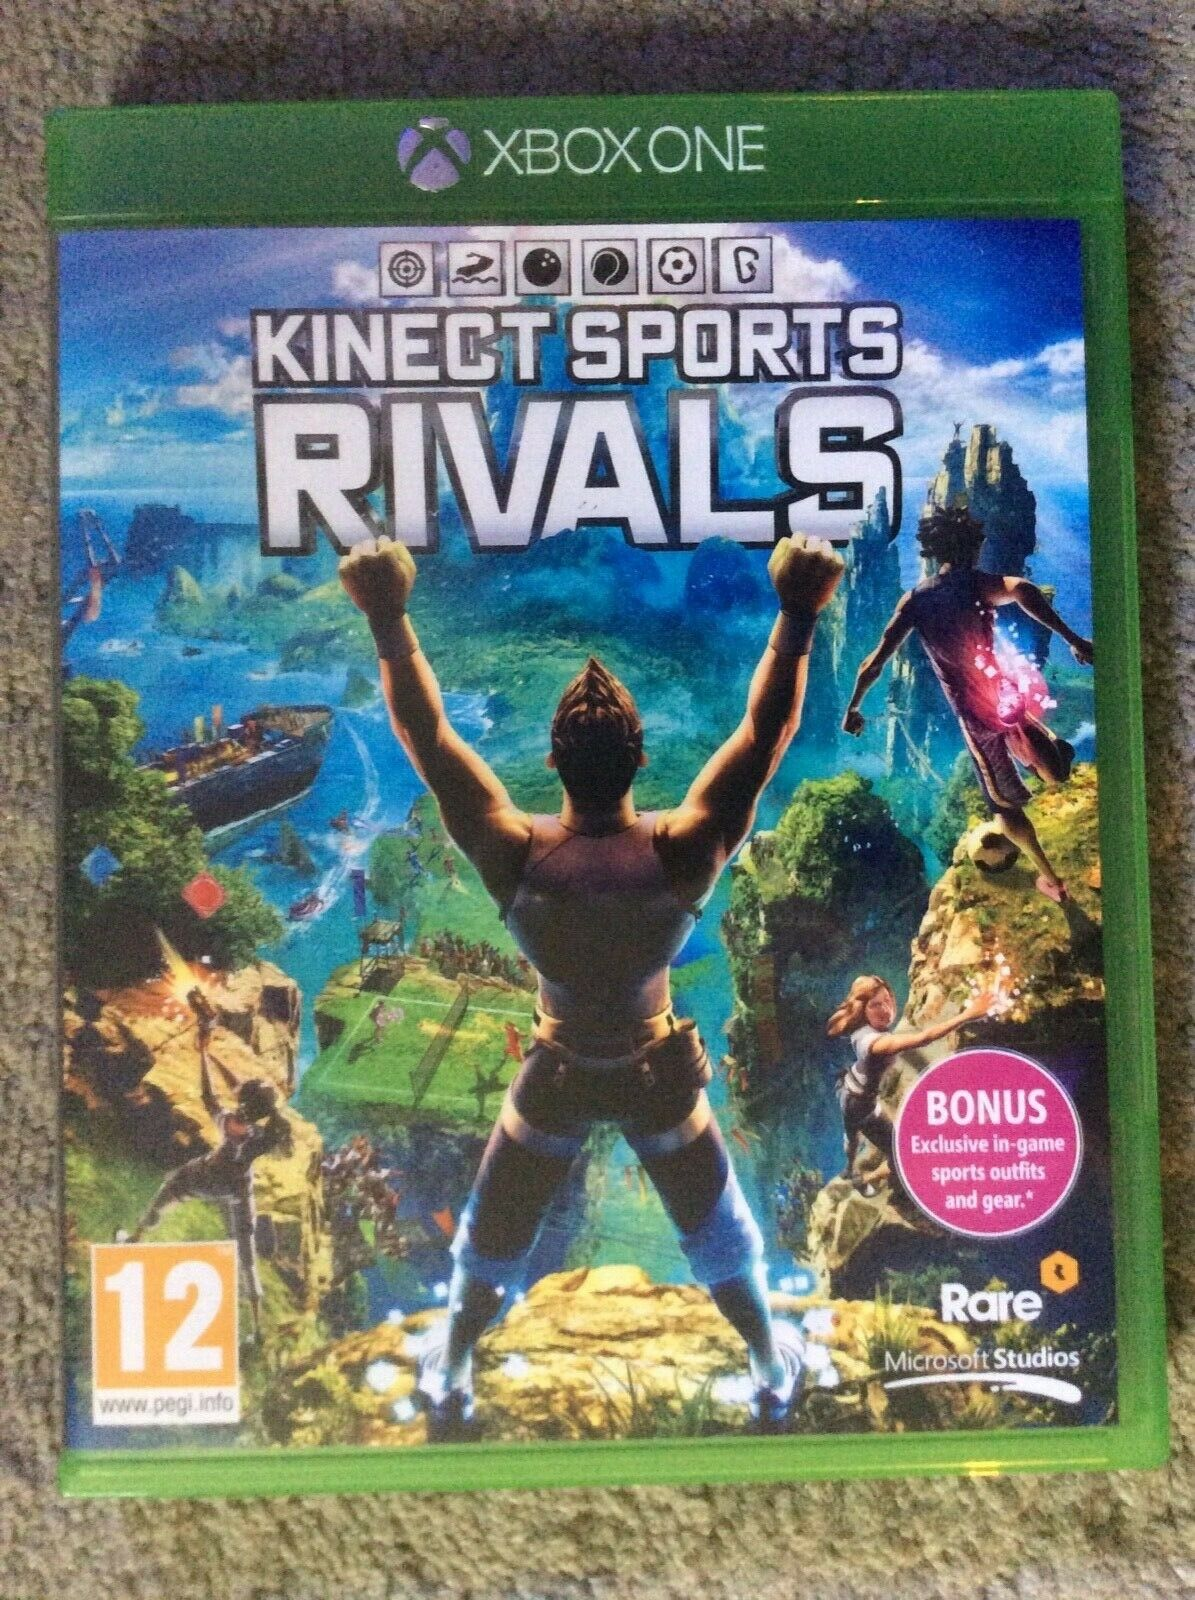 Official Microsoft Xbox One Kinect Motion Sensor with Sports Rivals game